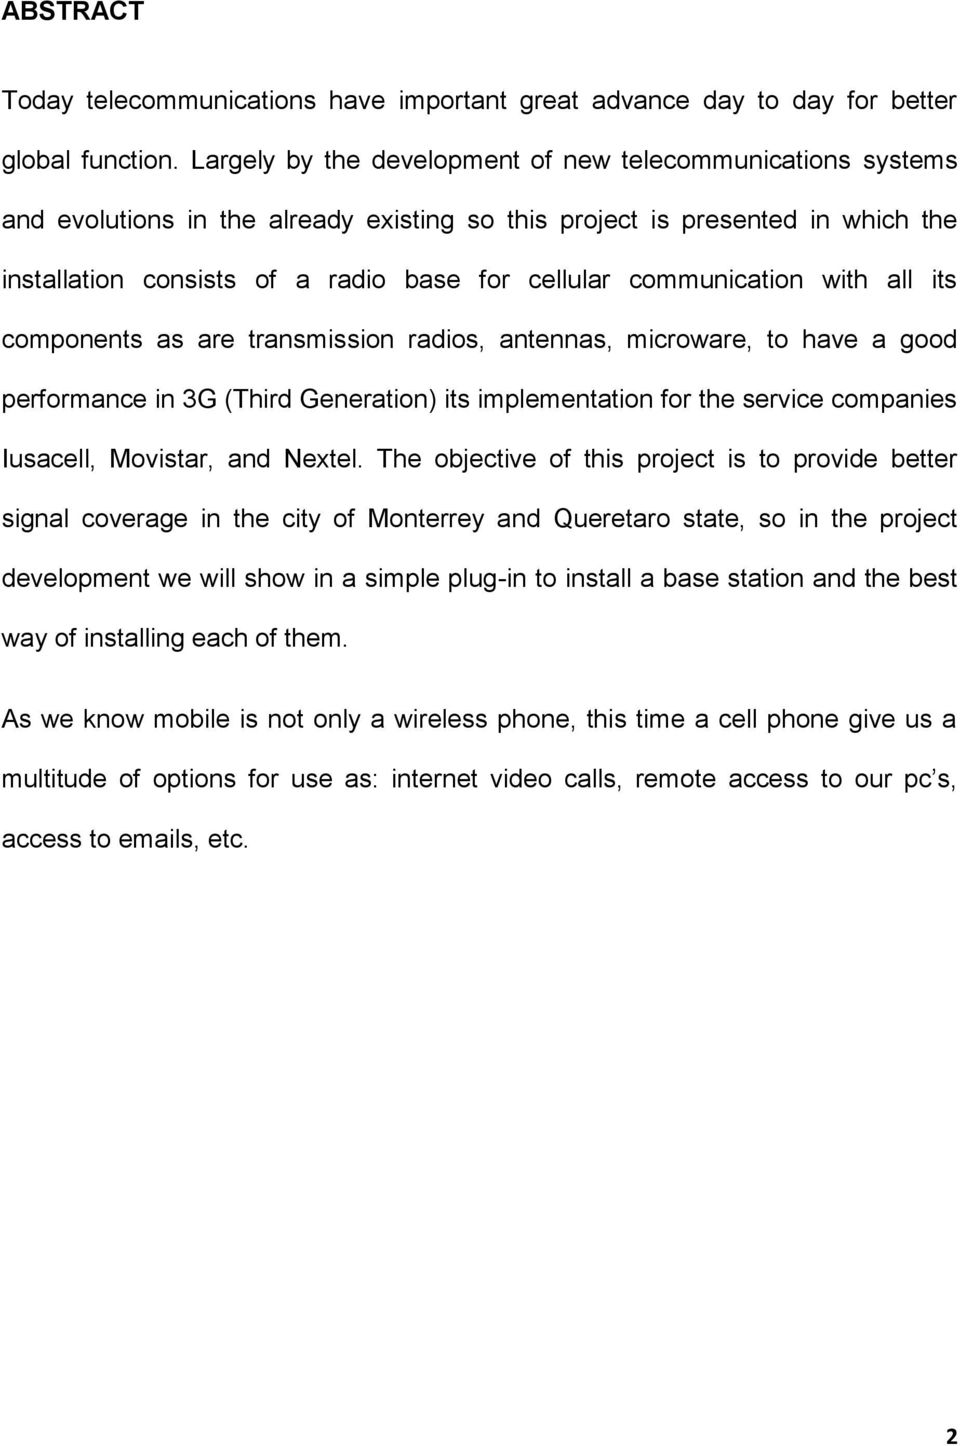 communication with all its components as are transmission radios, antennas, microware, to have a good performance in 3G (Third Generation) its implementation for the service companies Iusacell,